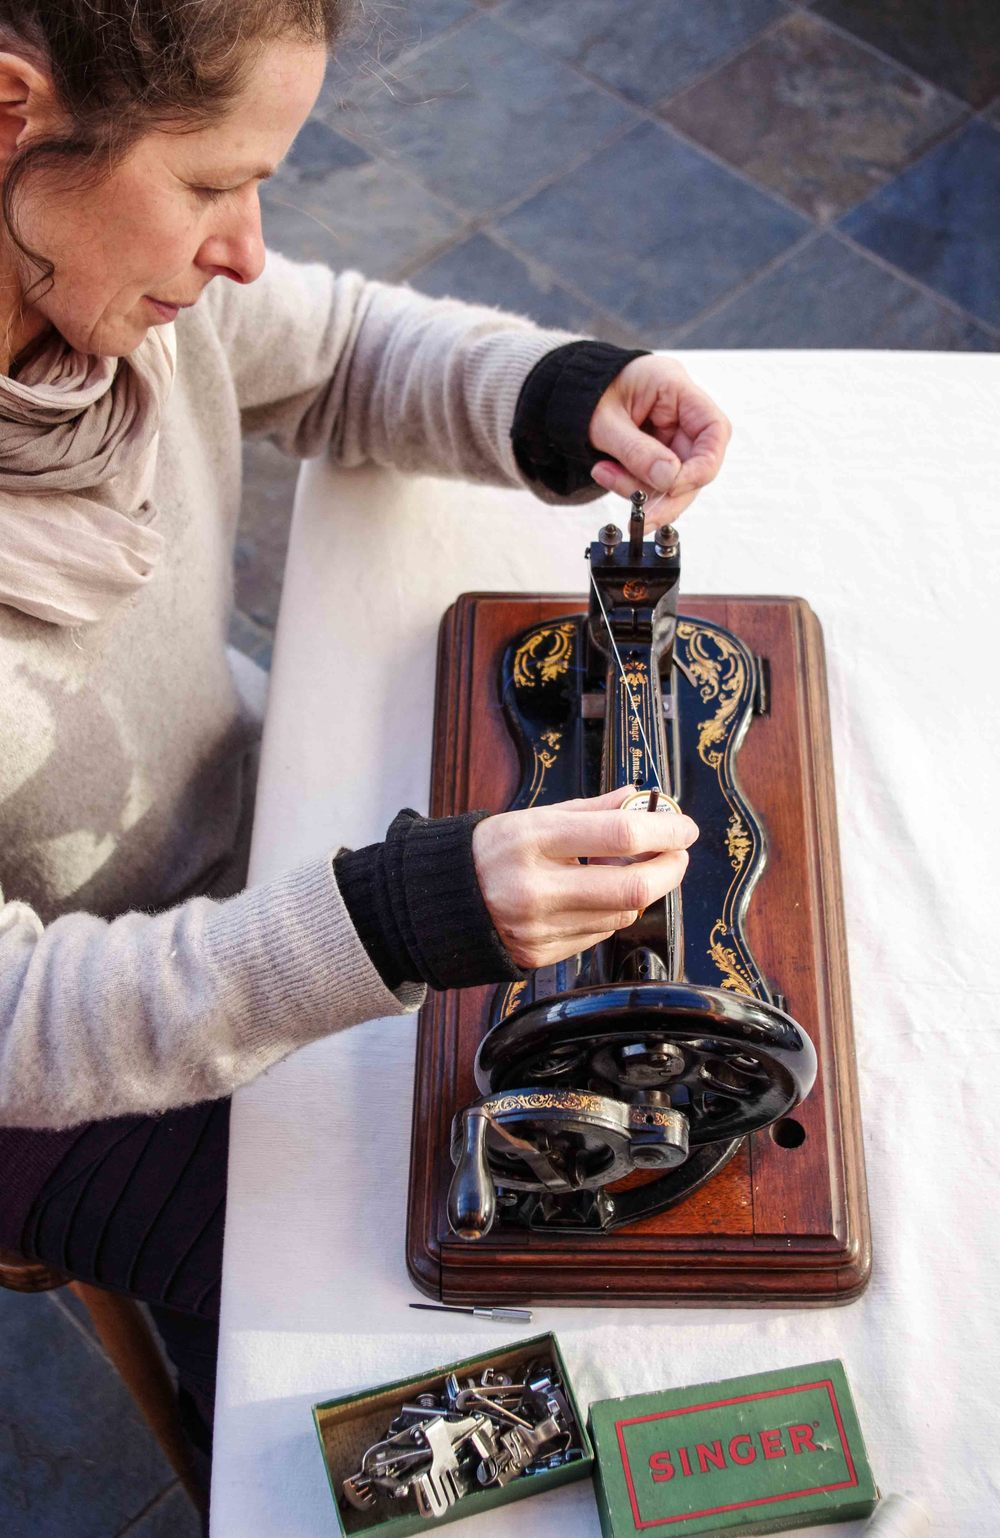 Helen Poremba Textile Artist using her vintage sewing machine